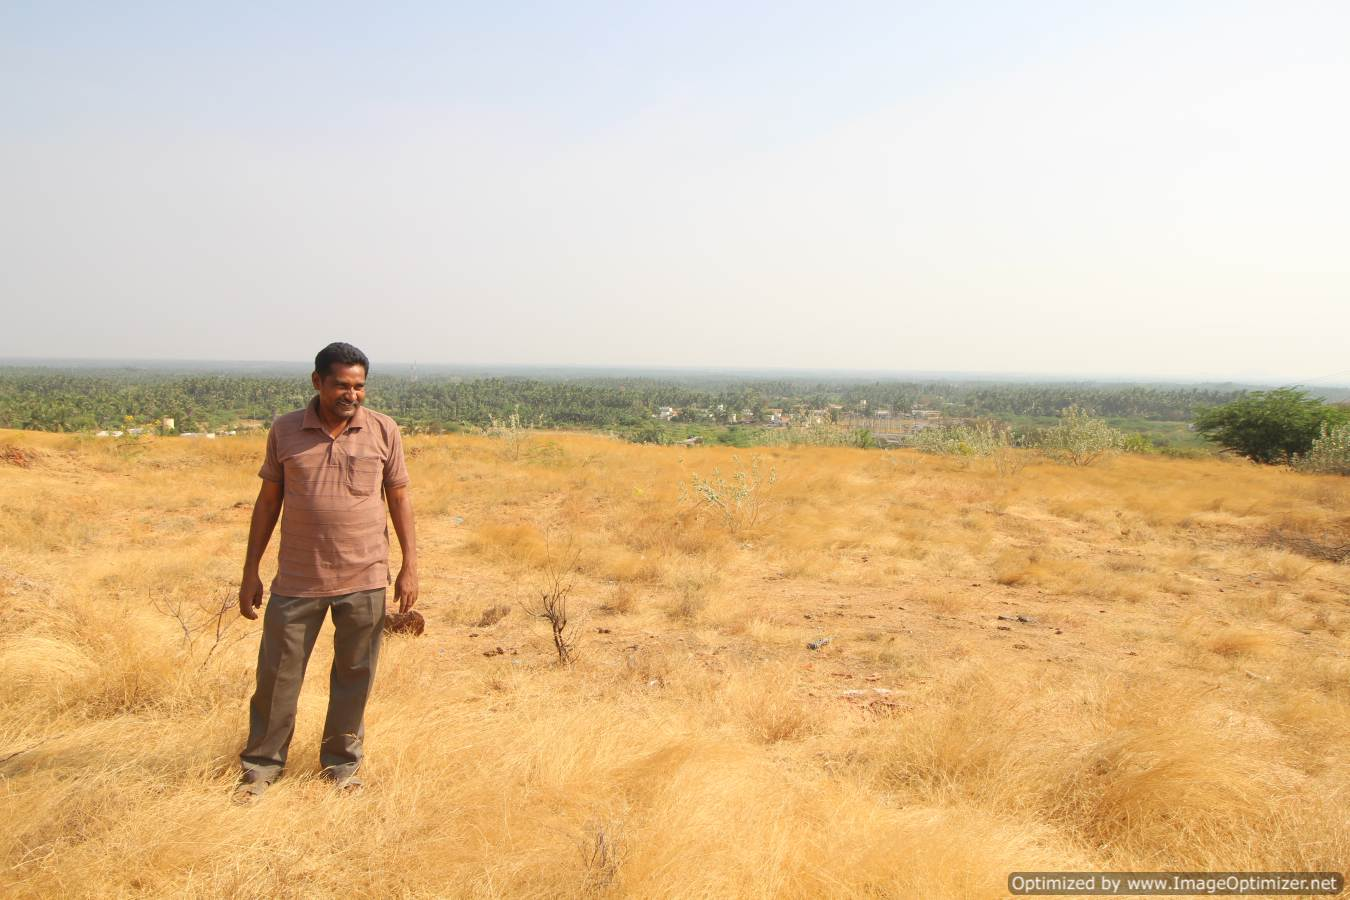 The environmental activist S. Mugilan near his home in Chennimalai, Tamil Nadu. Photo by Sibi Arasu.